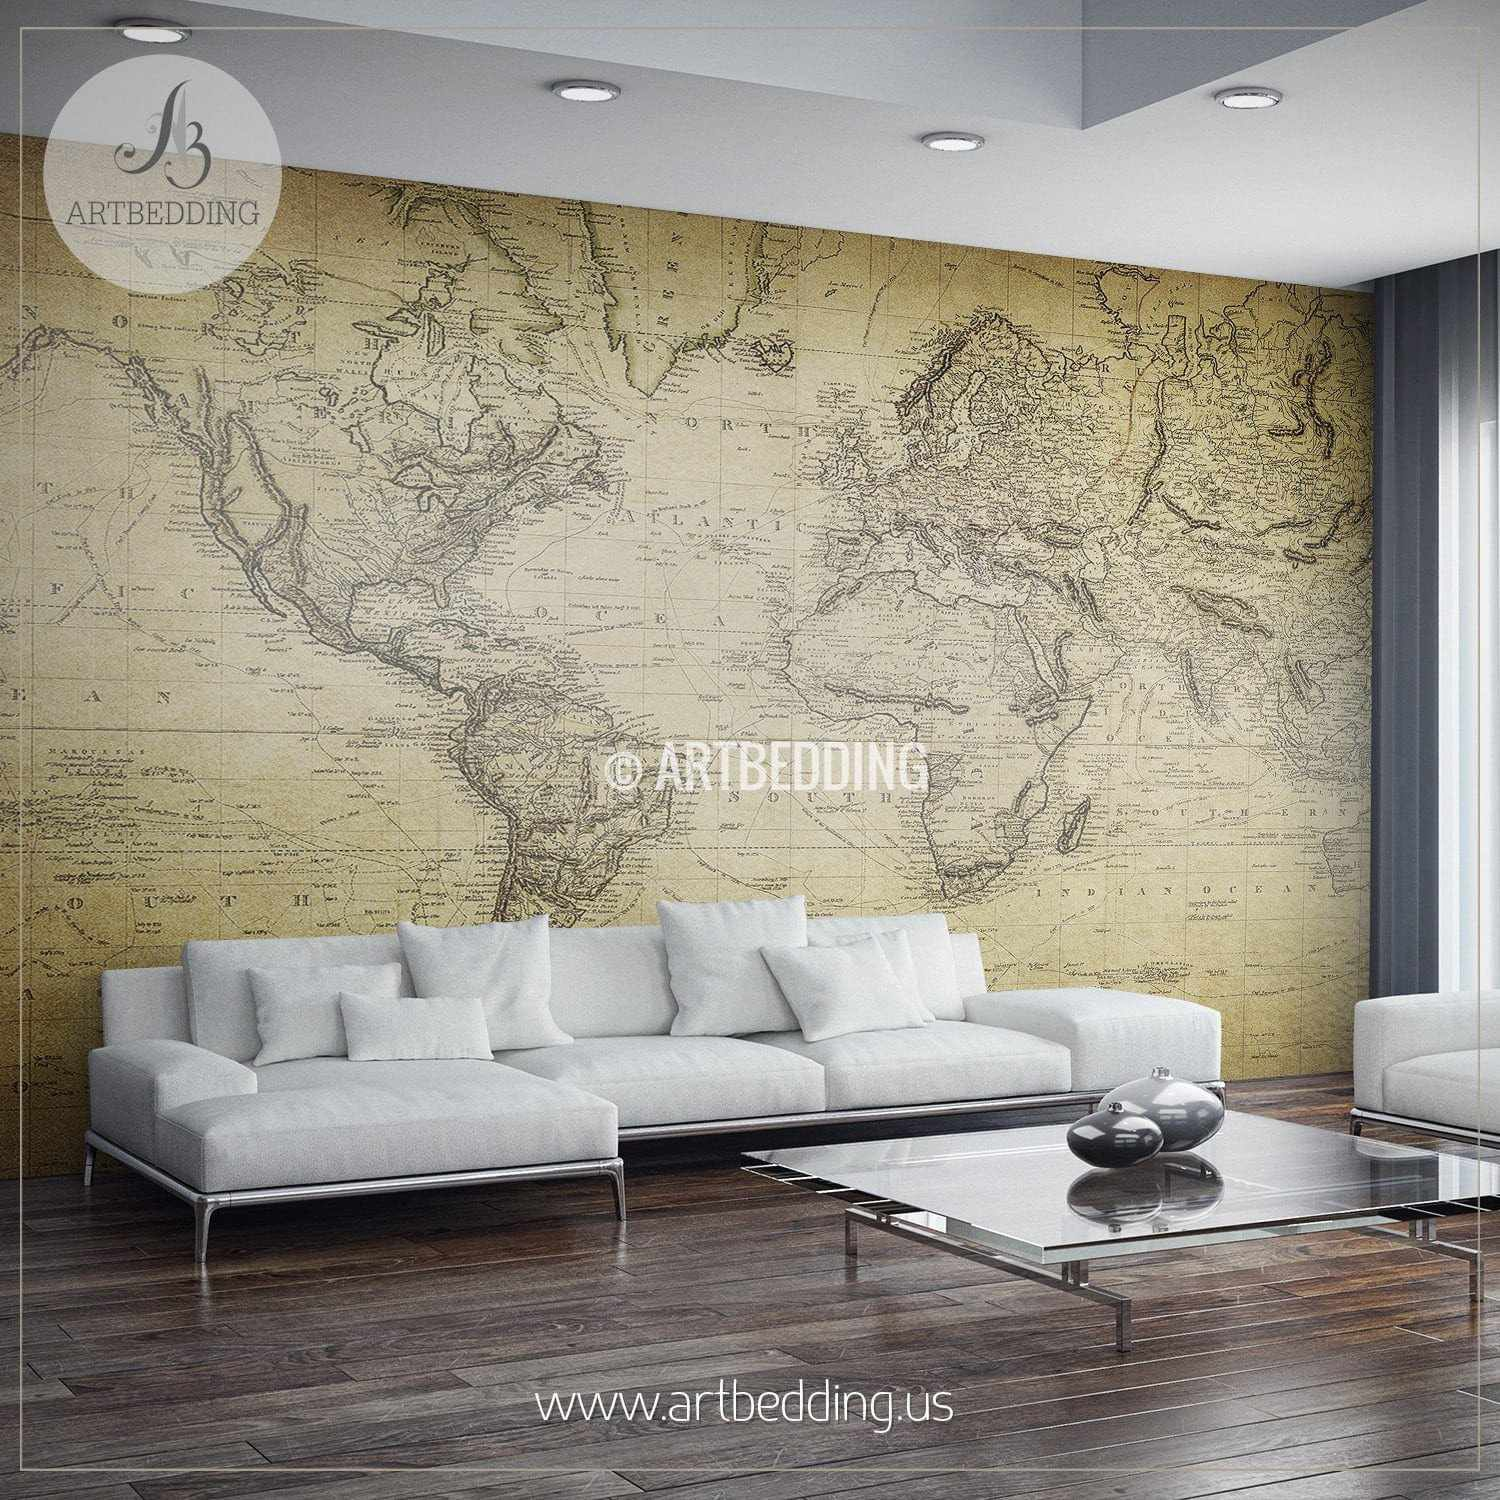 Vintage World Map From 1814 Wall Mural, Self Adhesive Peel U0026 Stick Photo  Mural, ... Part 81